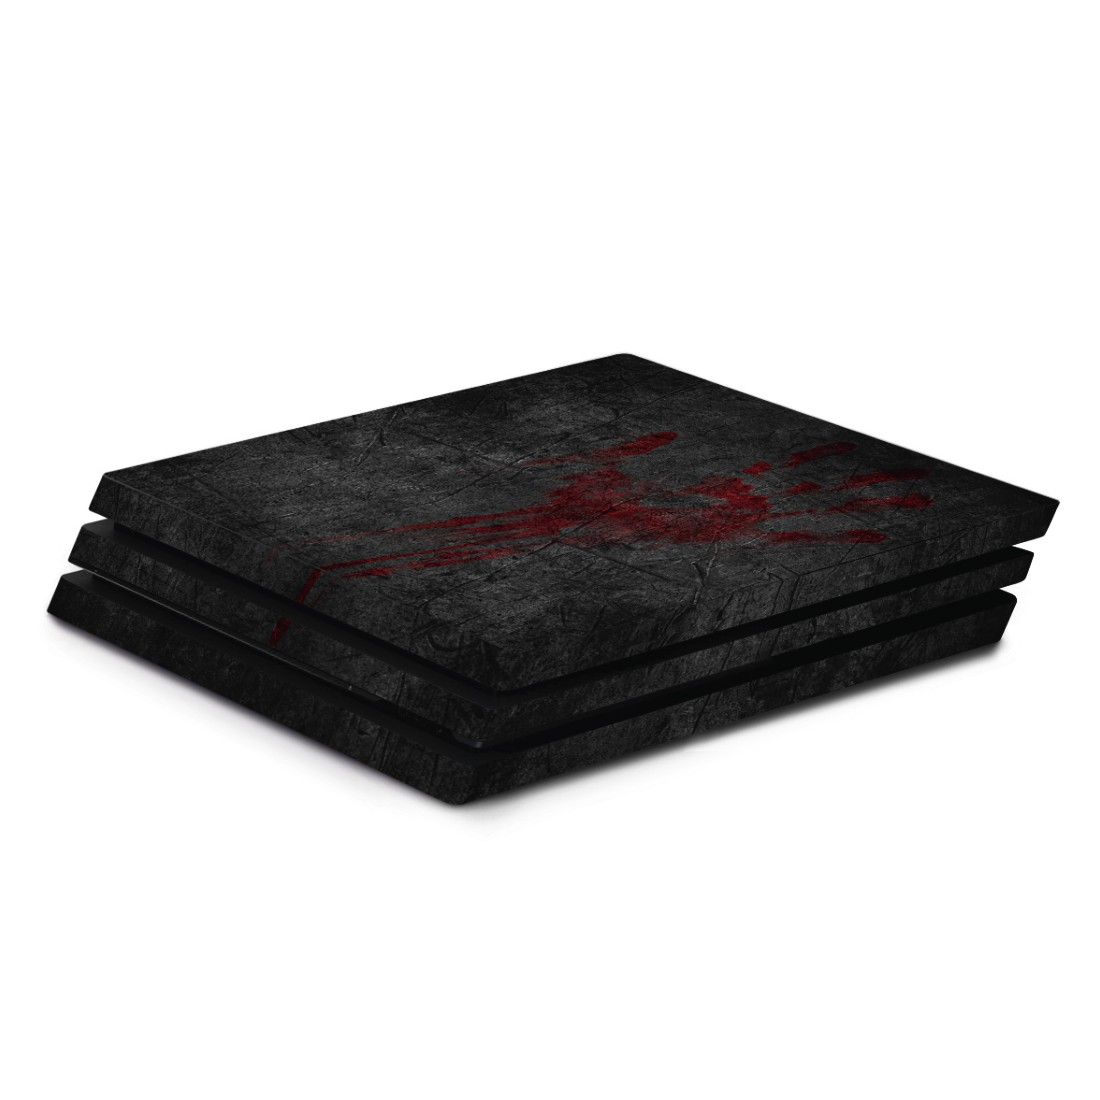 "awx High-Res Appliance - Hama, Habillage design ""Undead"" pour PlayStation 4 PRO"